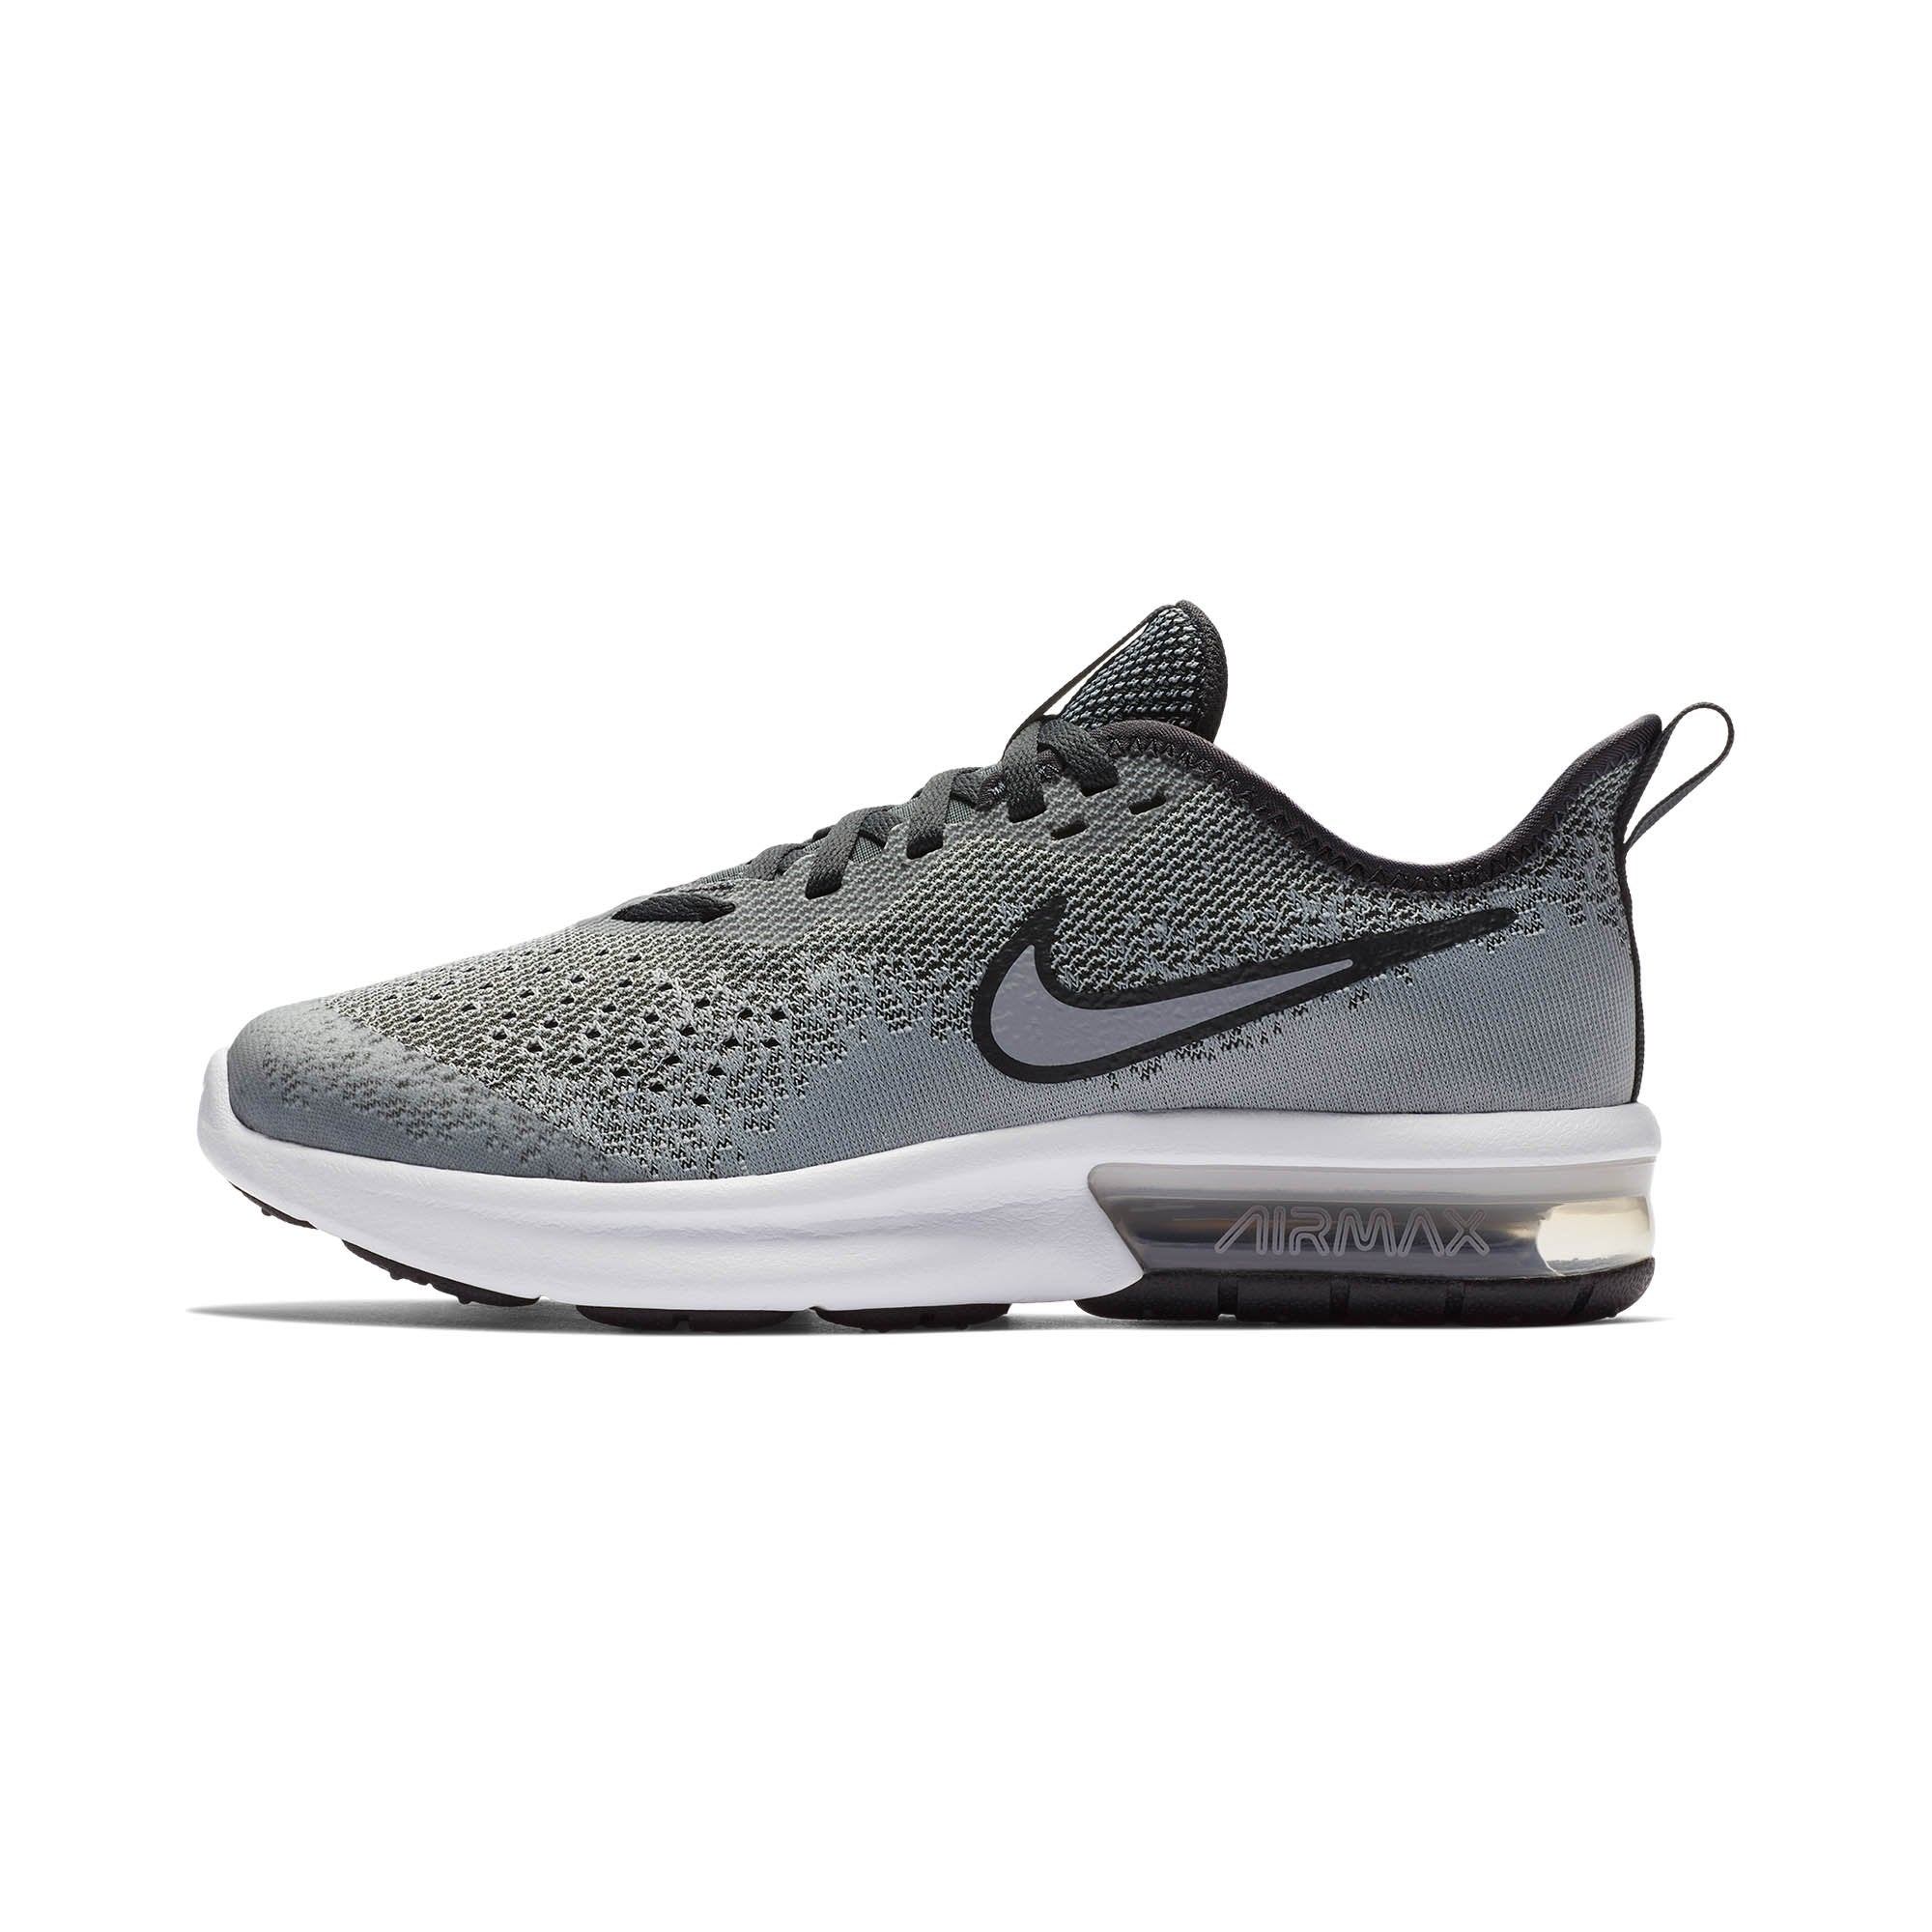 new arrival a1f64 31f03 Singapore NIKE Running Shoes Boys Air Max Sequent 4 Grade School Running  Shoes, Wolf Grey